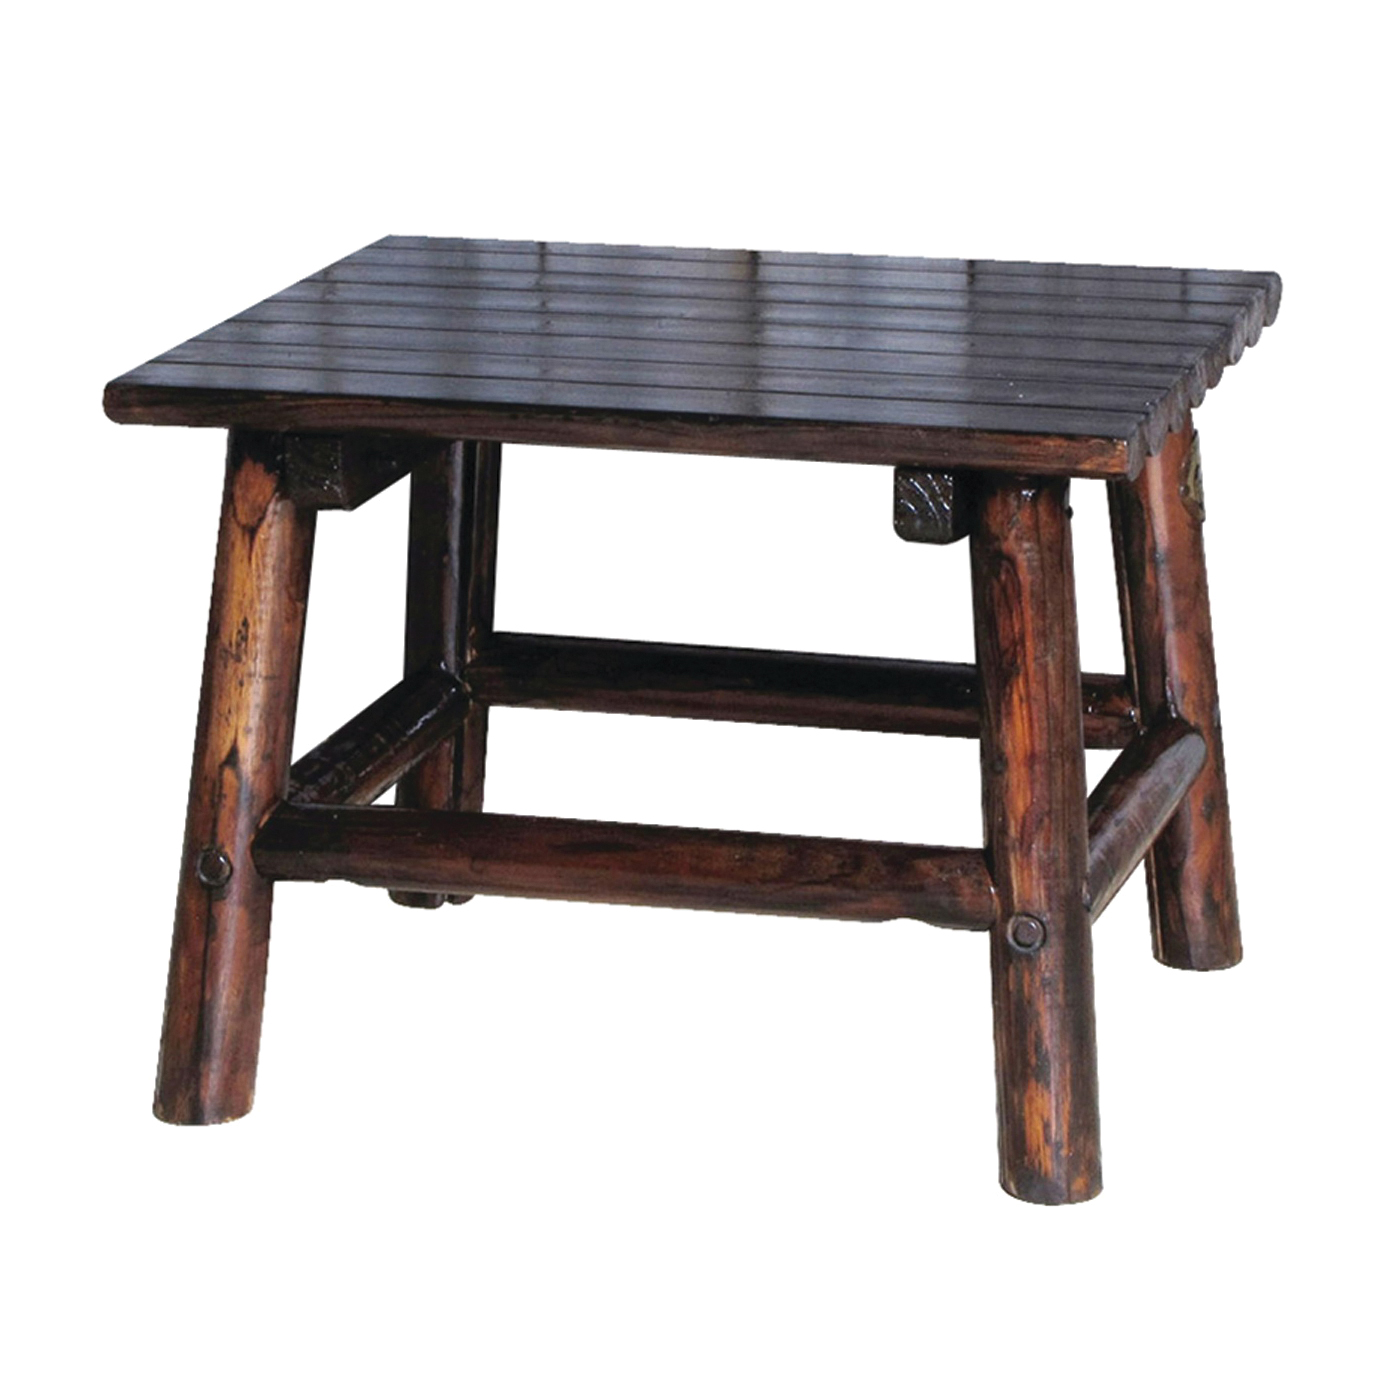 Picture of Leigh Country Traditional TX 93723 Charred Wood End Table, 20 in OAW, 18-1/2 in OAD, 24 in OAH, Rectangular